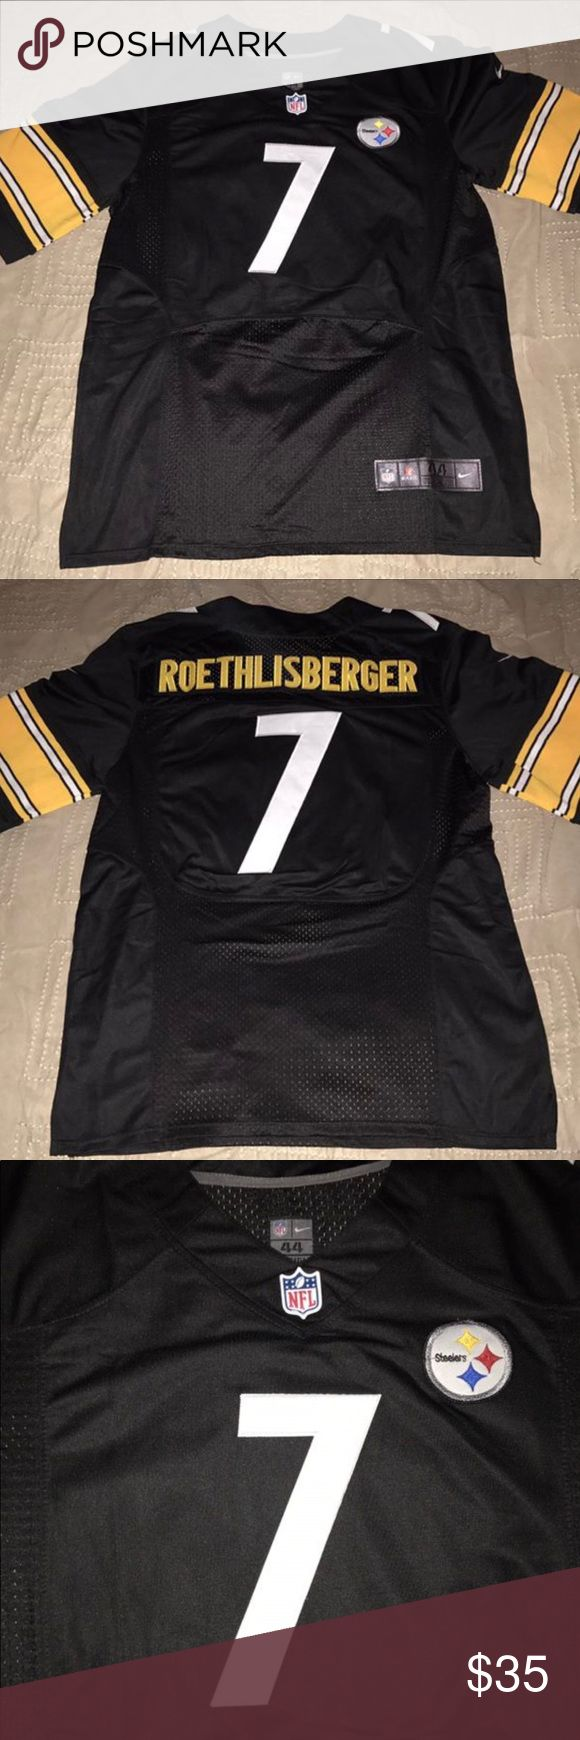 Ben Roethlisberger Pittsburgh Steelers Jersey Very nice Ben Roethlisberger Pittsburgh Steelers Replica jersey! Size men's L(44)! 9/10 condition! This jersey is used. It is 100% stitched and has minimal flaws. Machine Washed and Cleaned! If you have any questions please let me know! Nike Shirts Tees - Short Sleeve